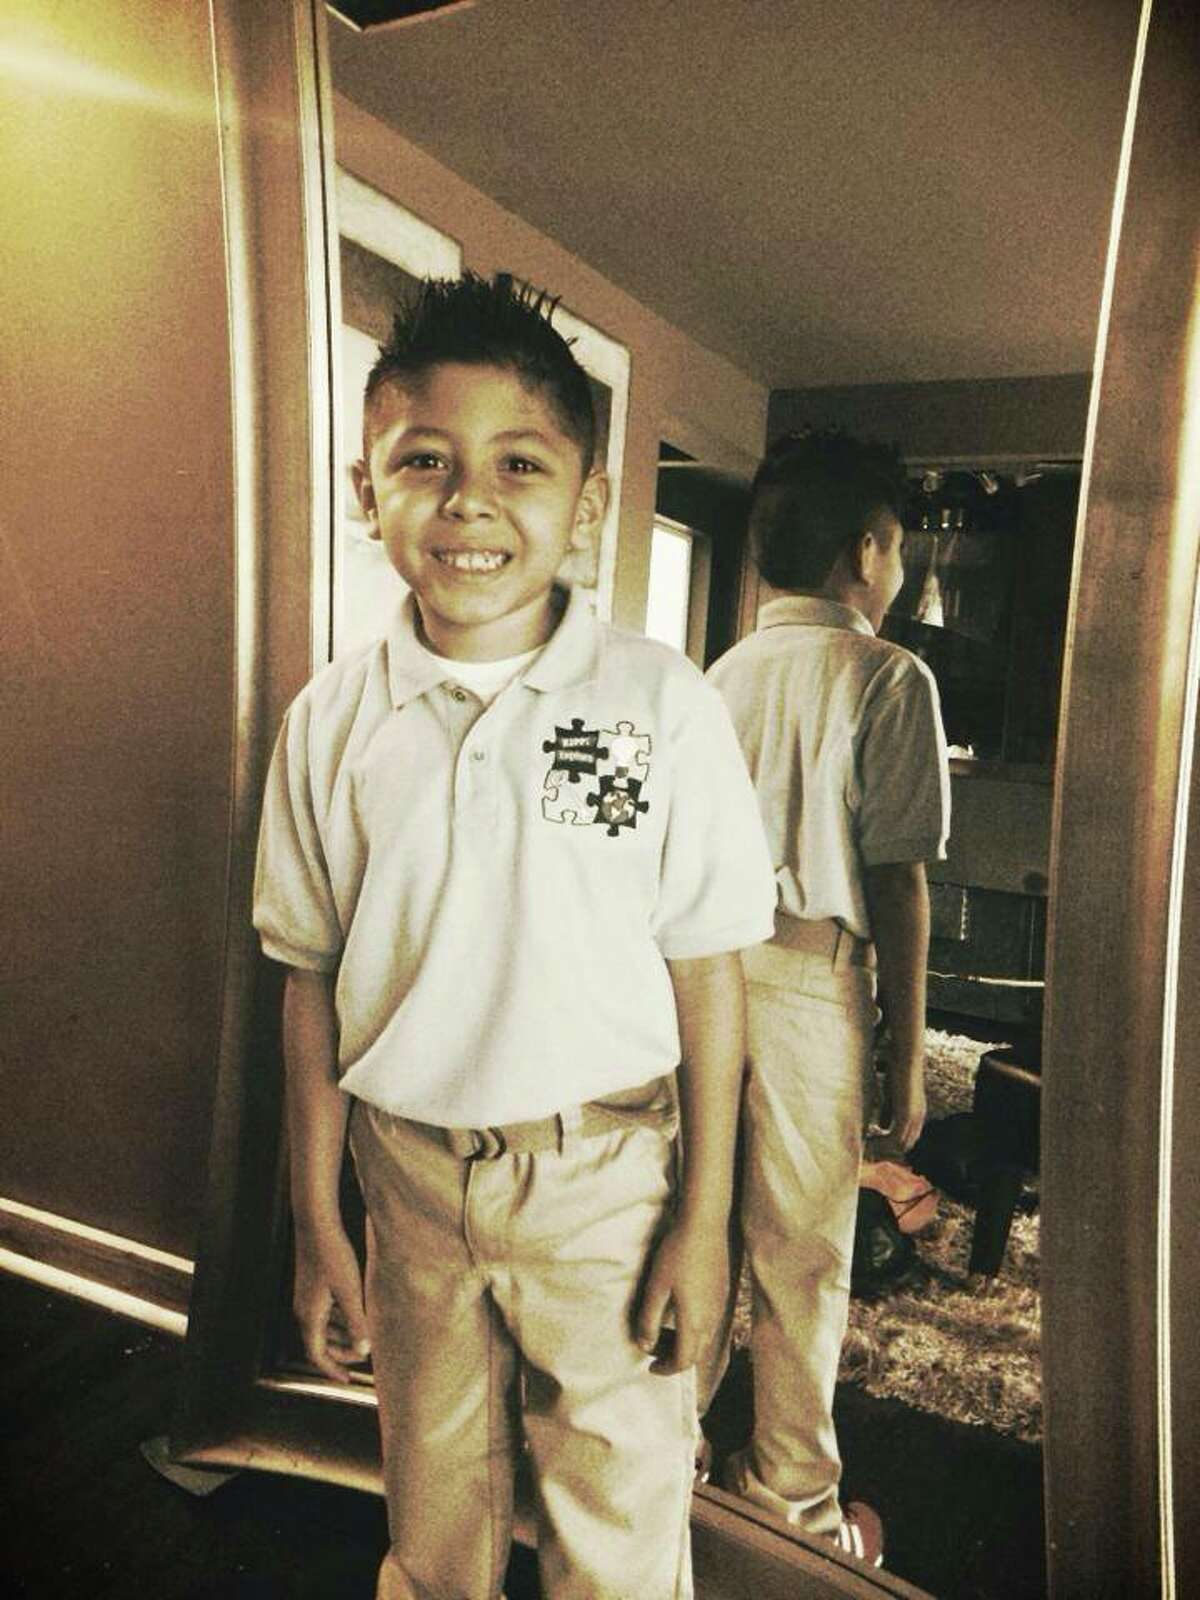 7-year-old Jordan Alexander Pinella is a second grade student in Houston that is already a die-hard horror fanatic with a devoted following of fans. He plans on being a horror movie director one day.